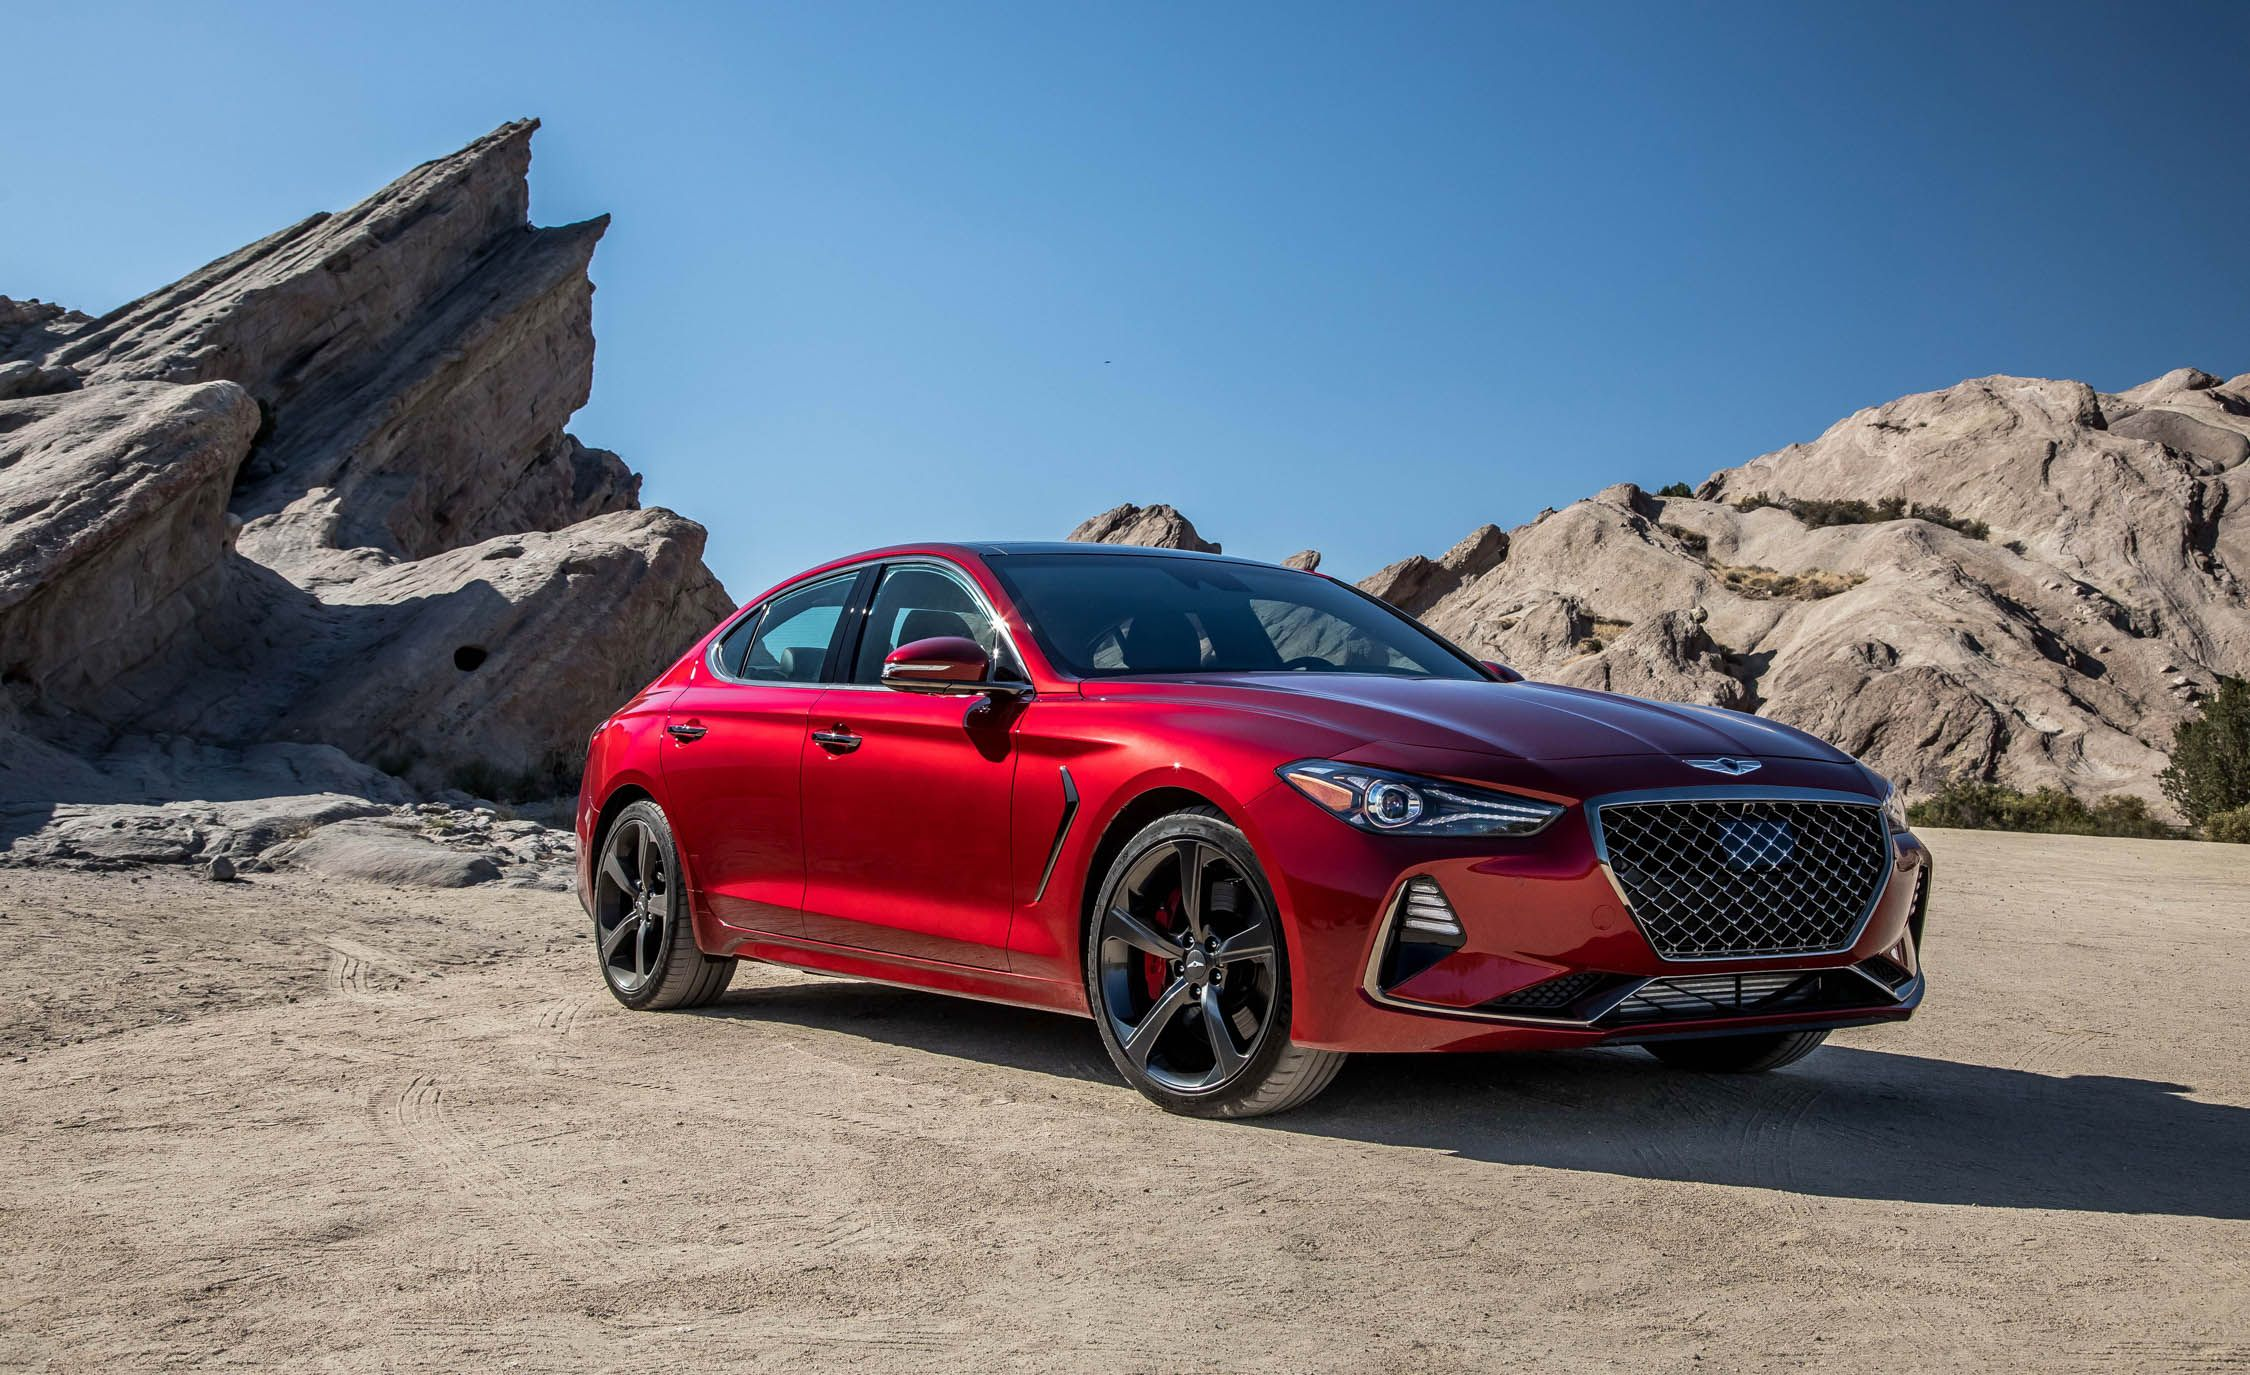 1. Genesis G70 The Genesis G70 is the Korean luxury brand's first real attempt at taking down BMW. It is a sports sedan aimed squarely at the iconic 3-series, and it's a knockout freshman effort.